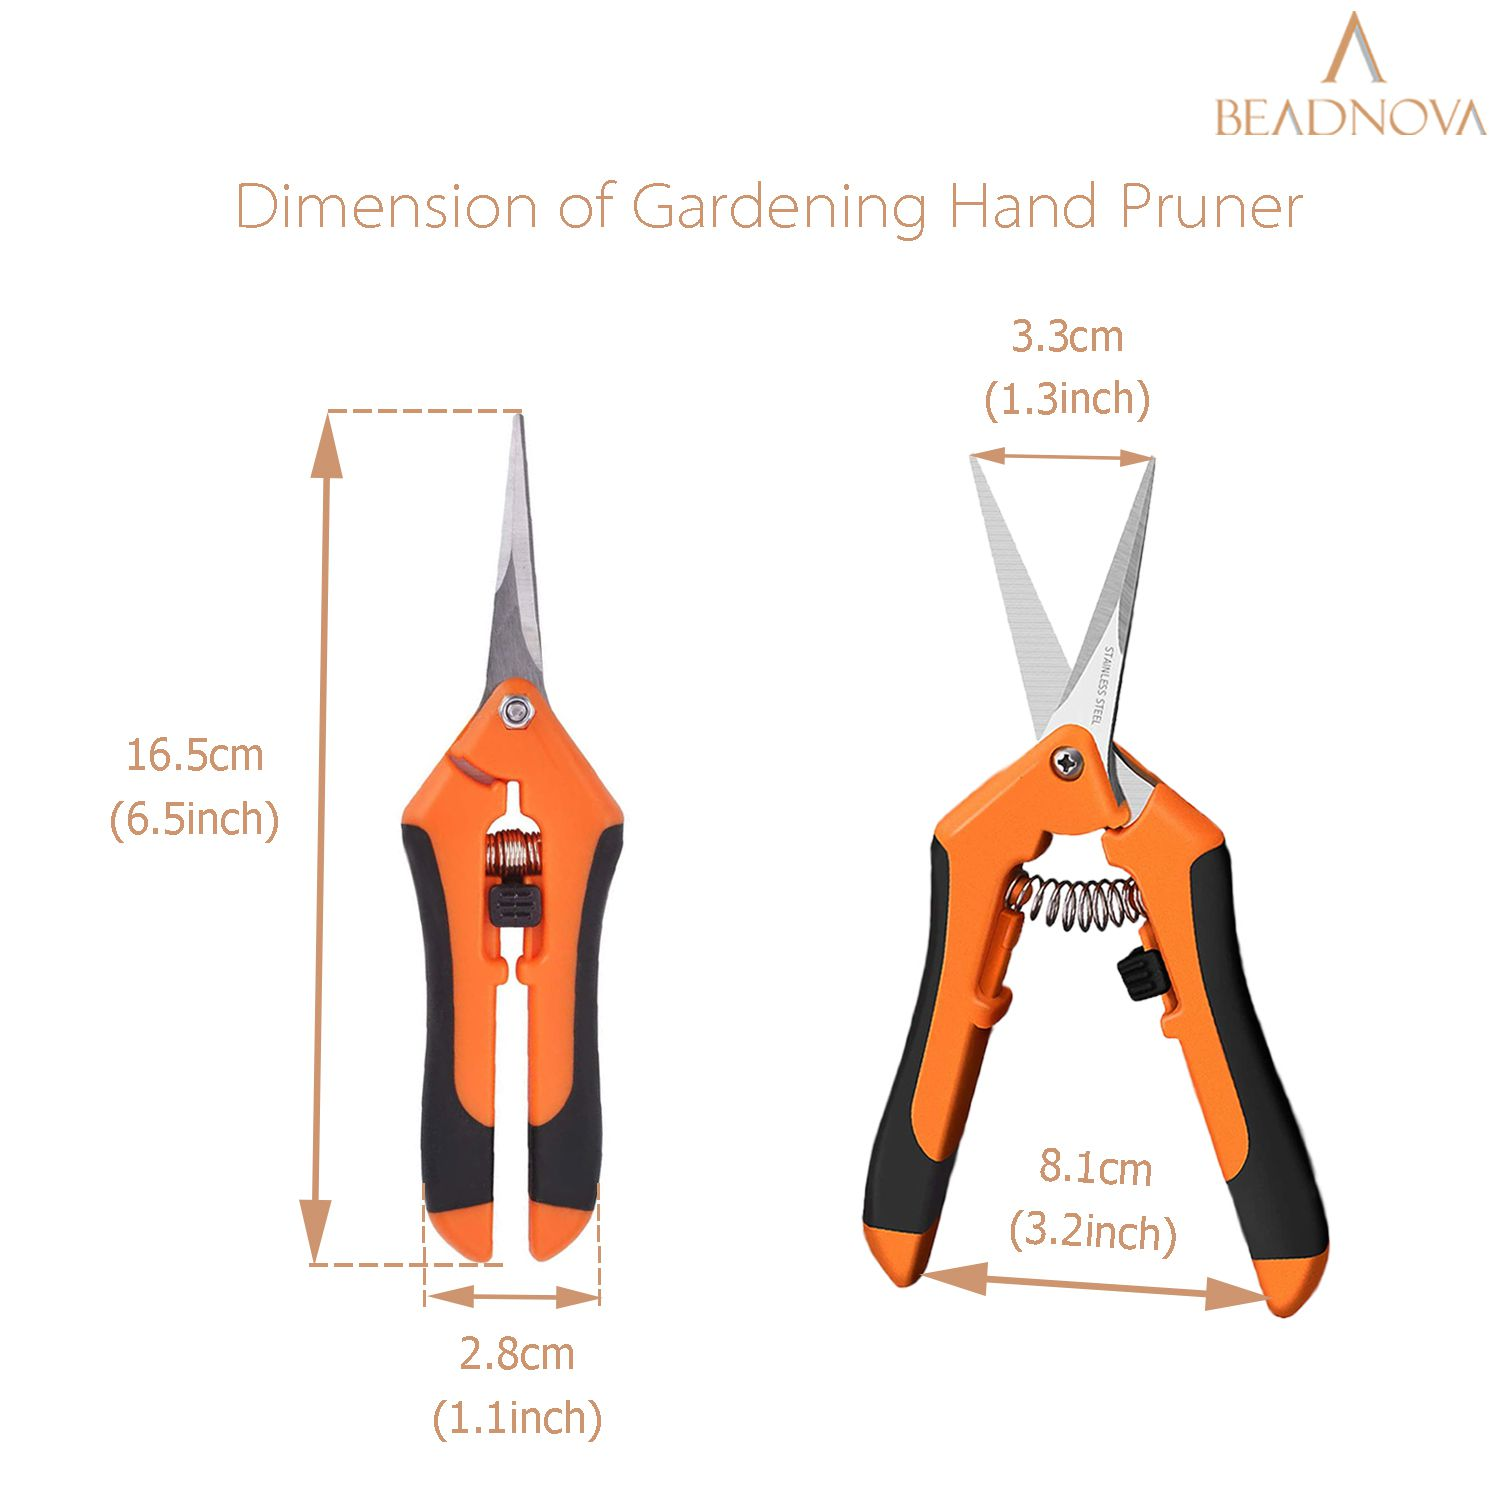 BEADNOVA Trimming Scissors Gardening Scissors Pruning Snips Garden Sheers Trim Scissors Plant Trimmers Pruners for Gardening (Green Orange, 2 Pcs)